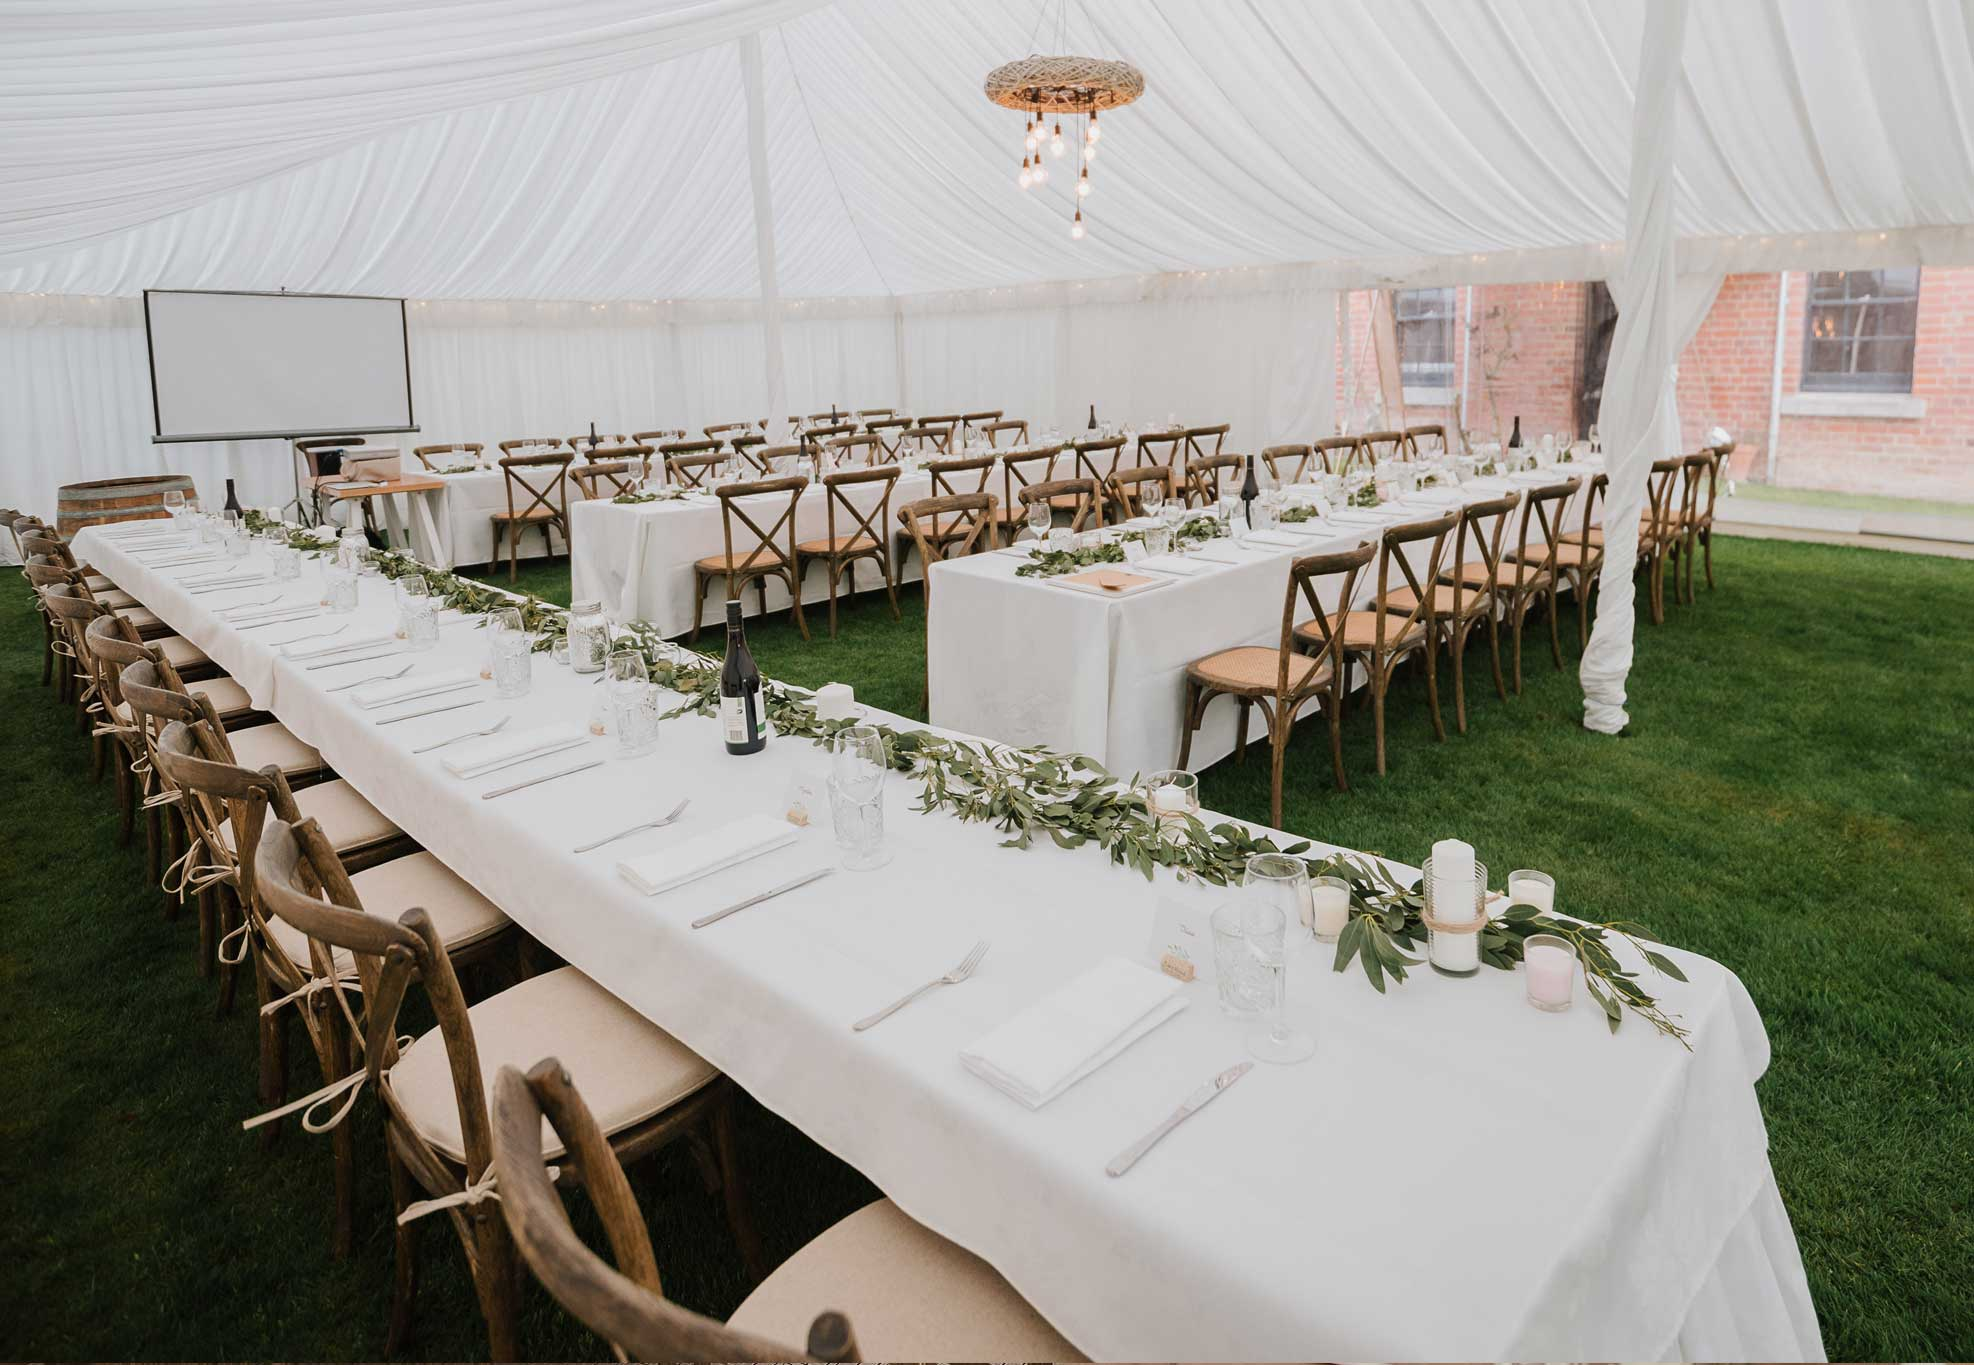 silk-estate-marquee-weddings-and-events-styling-and-hire-furniture-long-trestle-table-4